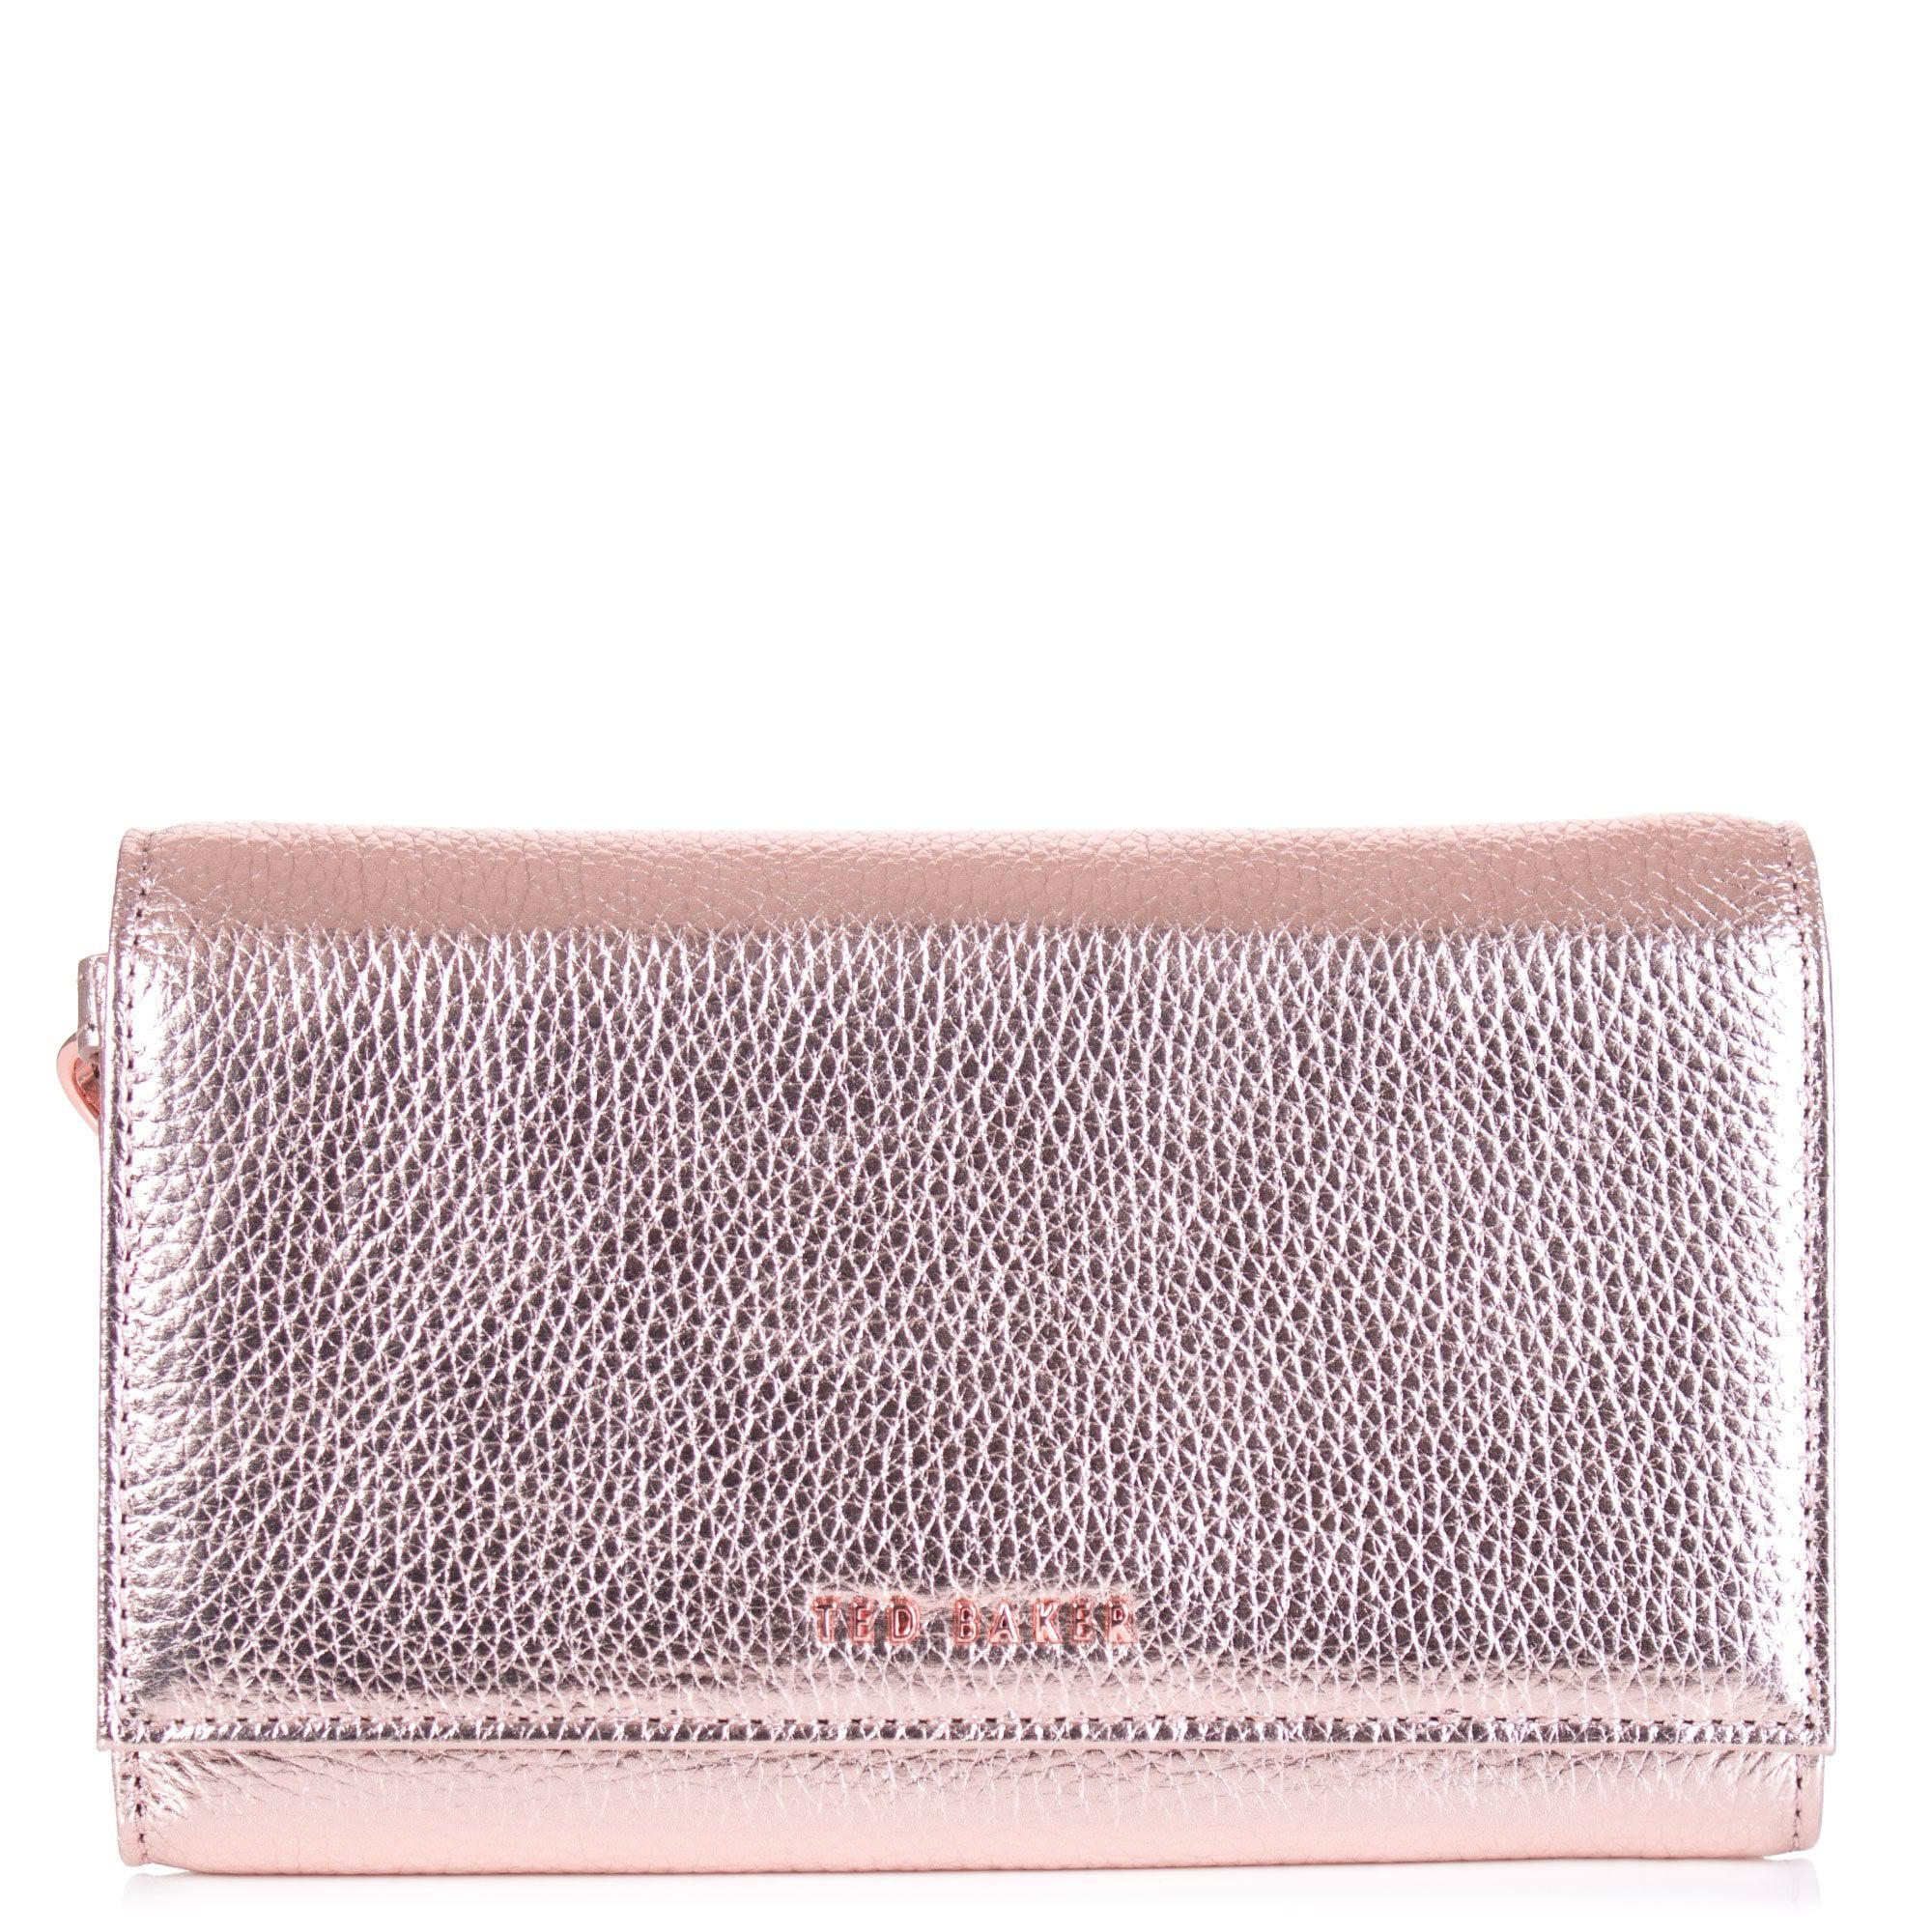 f1f91f3050052 Ted Baker Holli Textured French Purse in Pink - Lyst